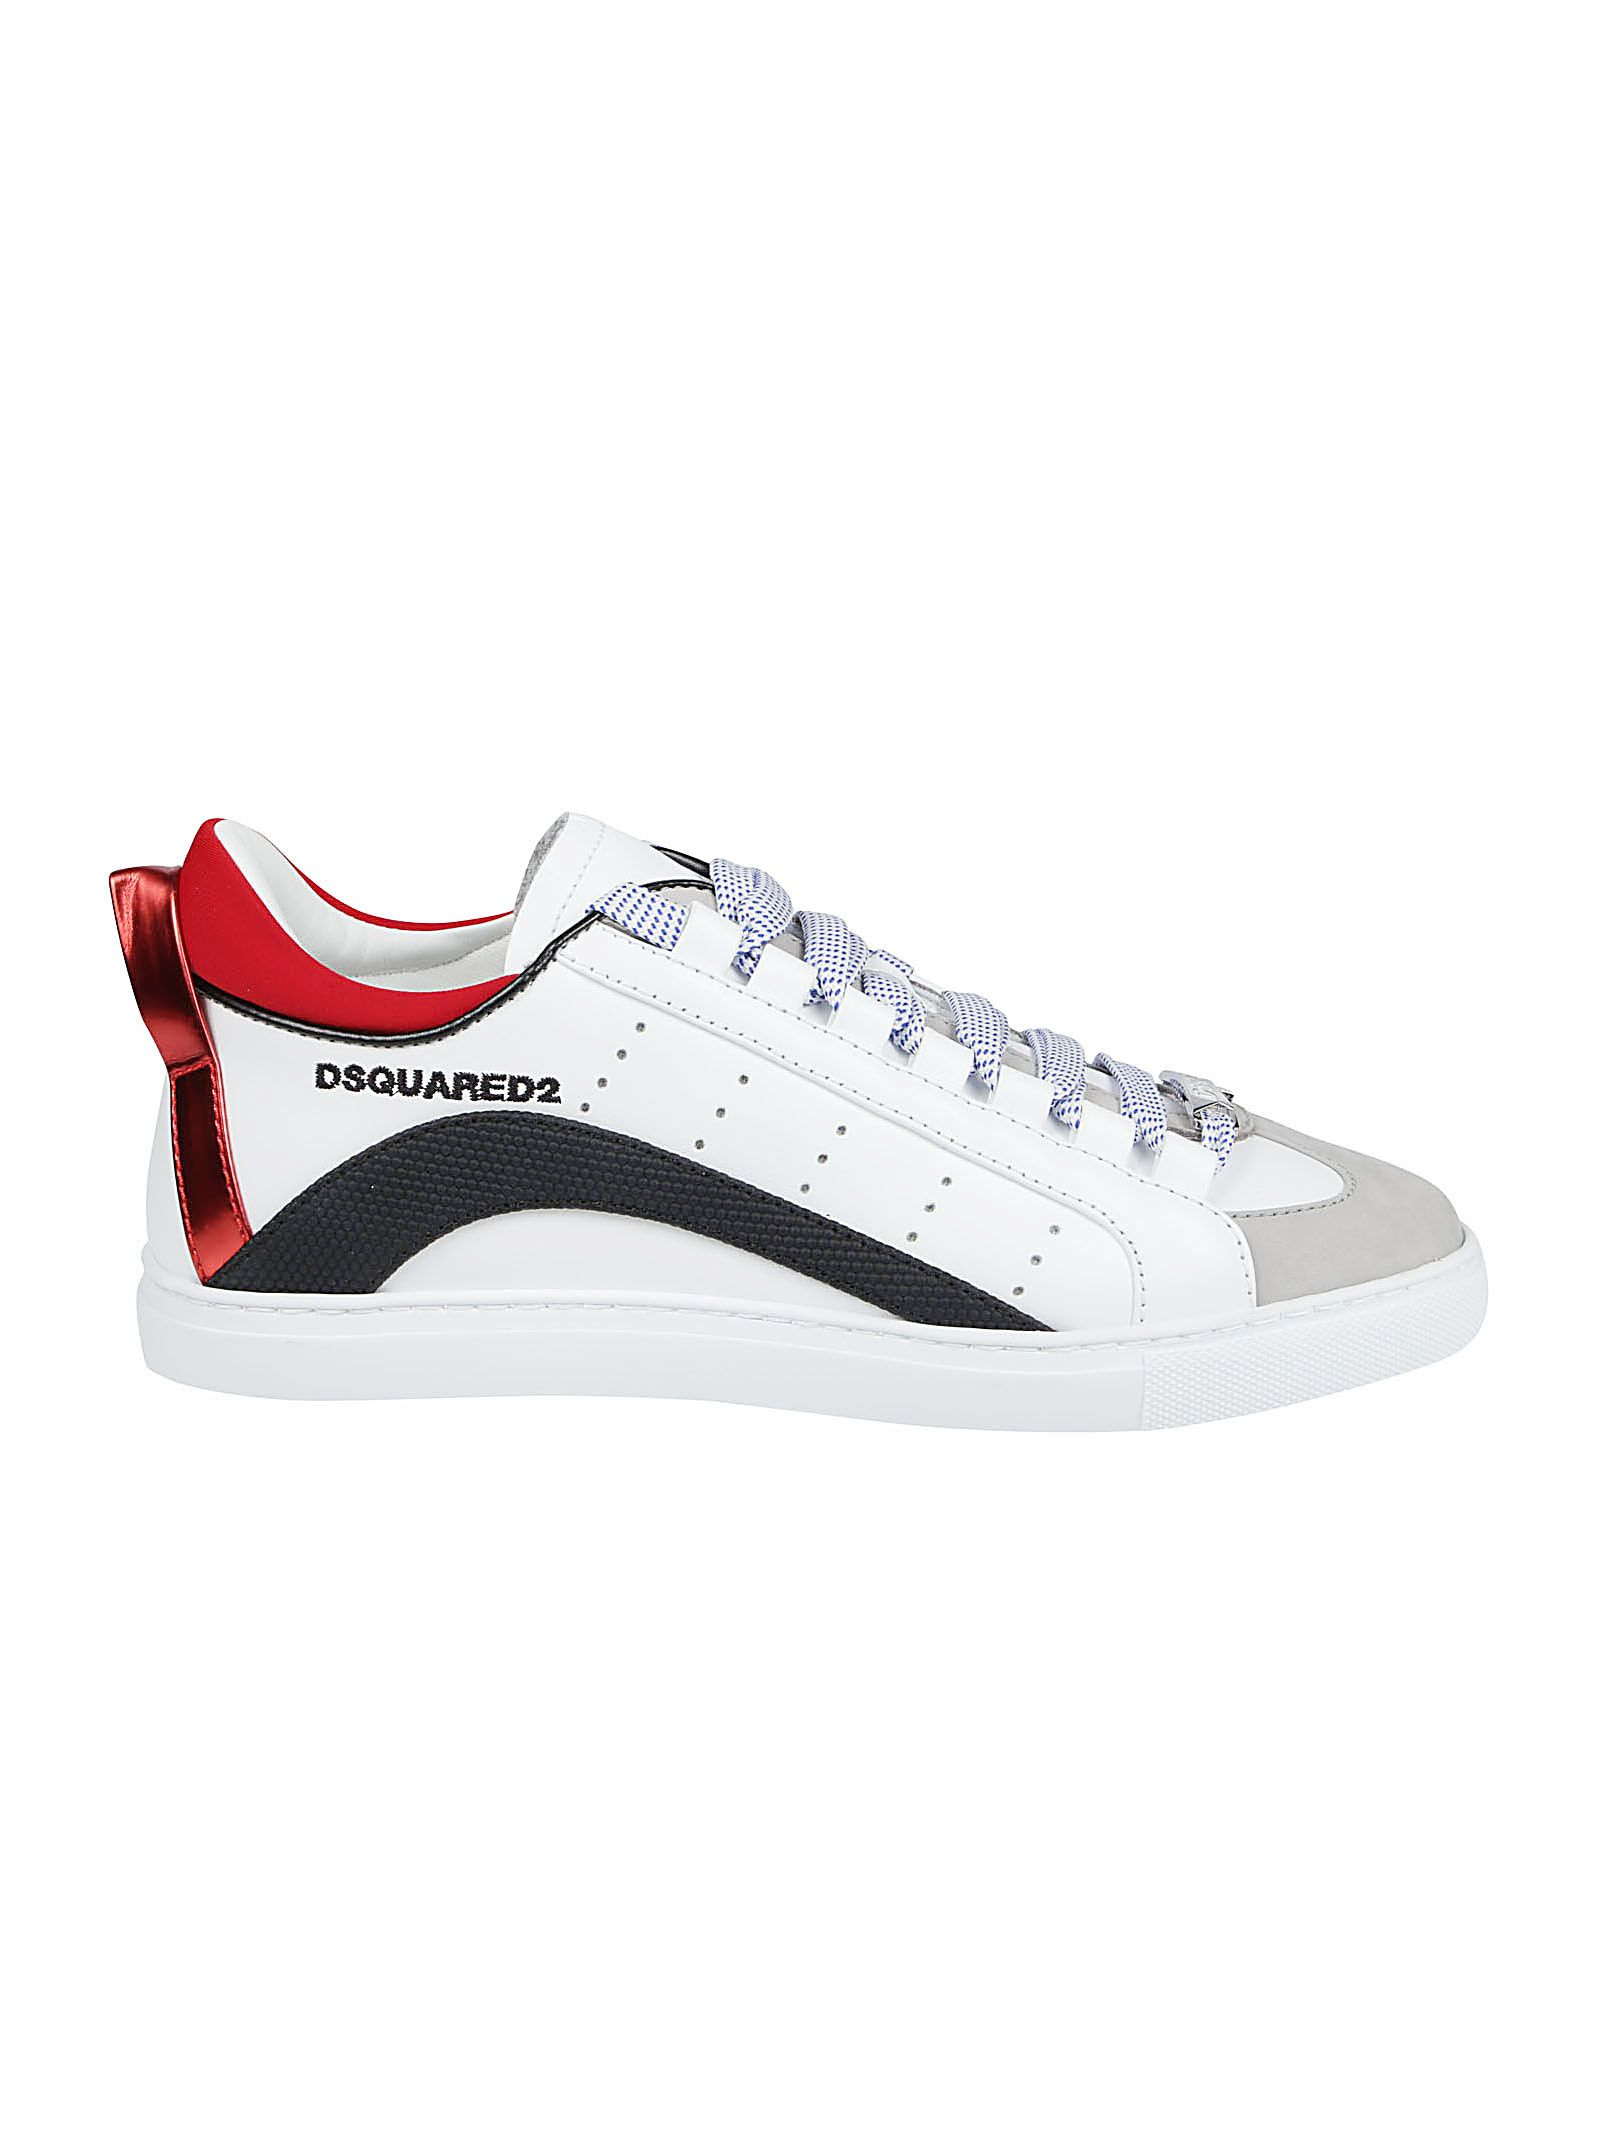 Dsquared2 Leathers DSQUARED2 MEN'S SNM009001503995M536 WHITE OTHER MATERIALS SNEAKERS